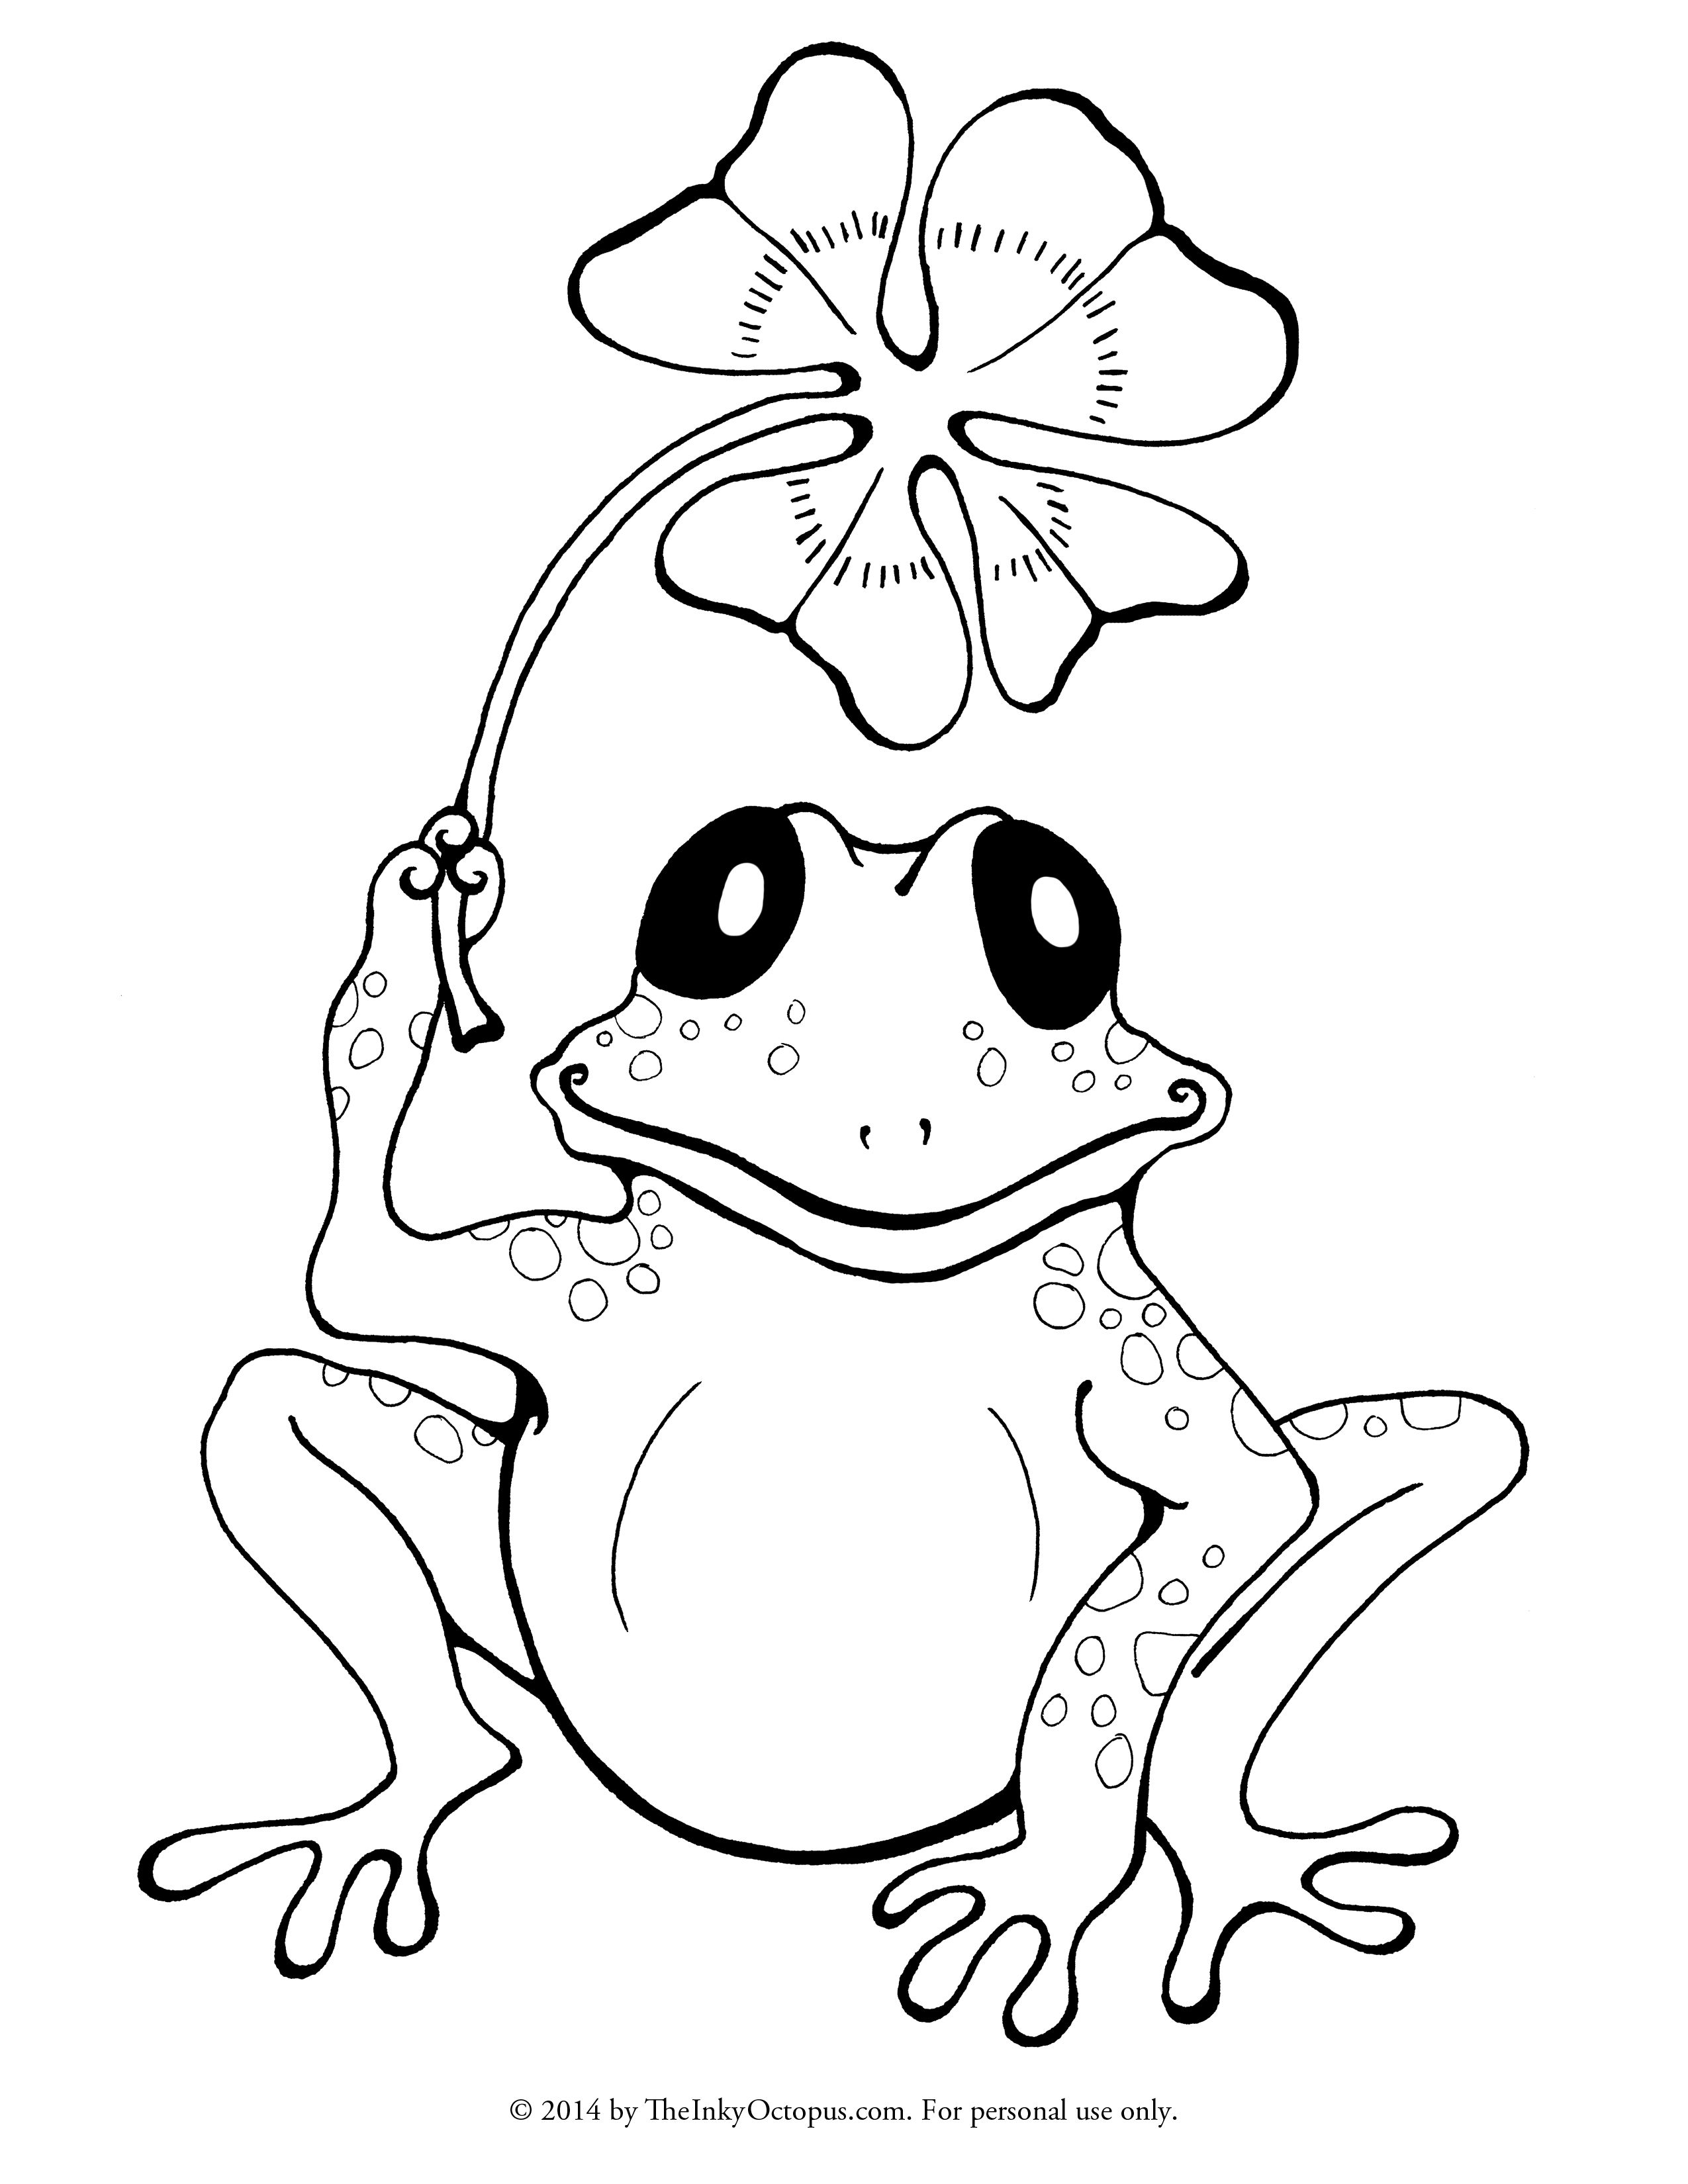 Pin by Birgit Keys on Clip Art Dinosaurs in 2018 | Pinterest | Frogs ...